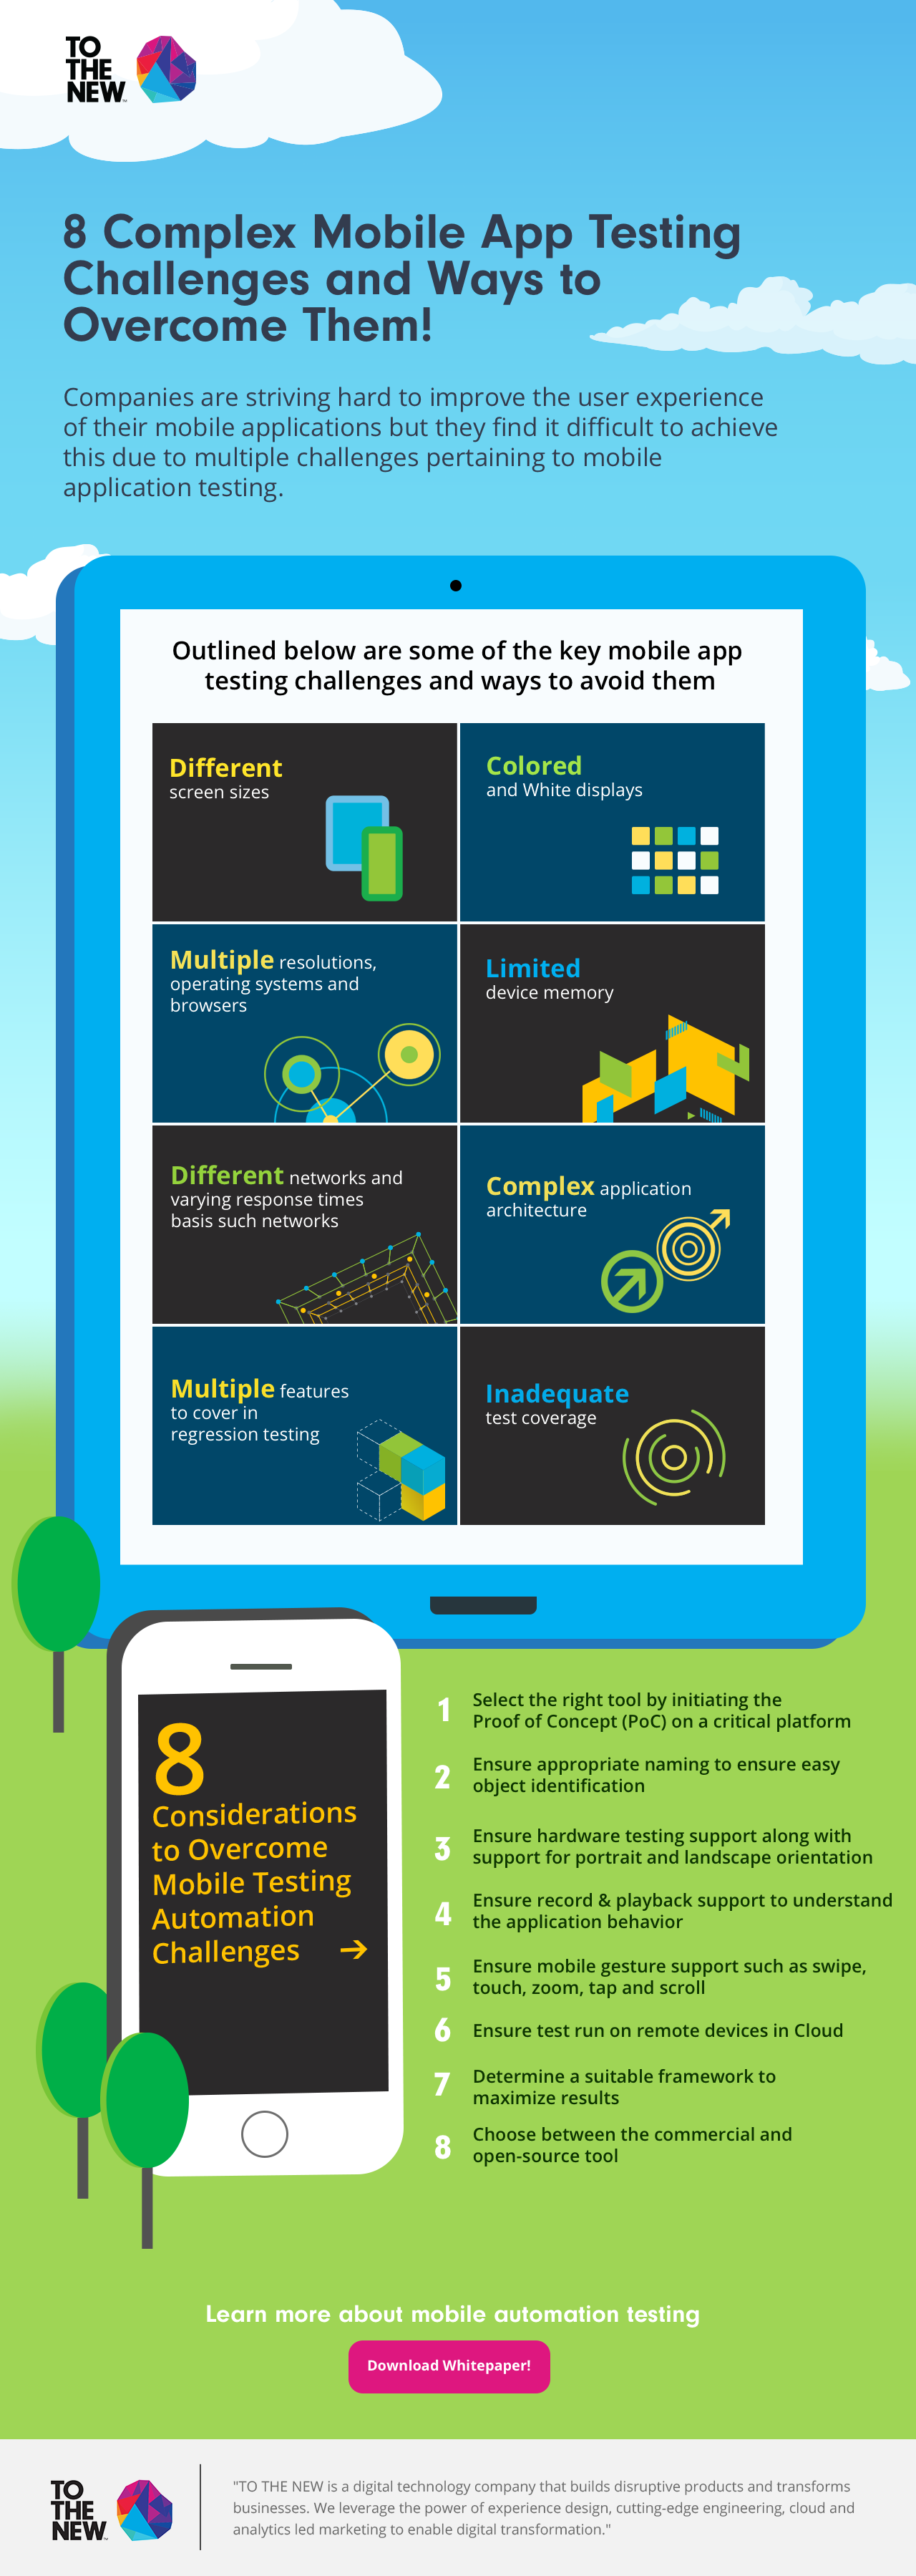 8-complex-mobile-app-testing-challenges-and-ways-to-overcome-them